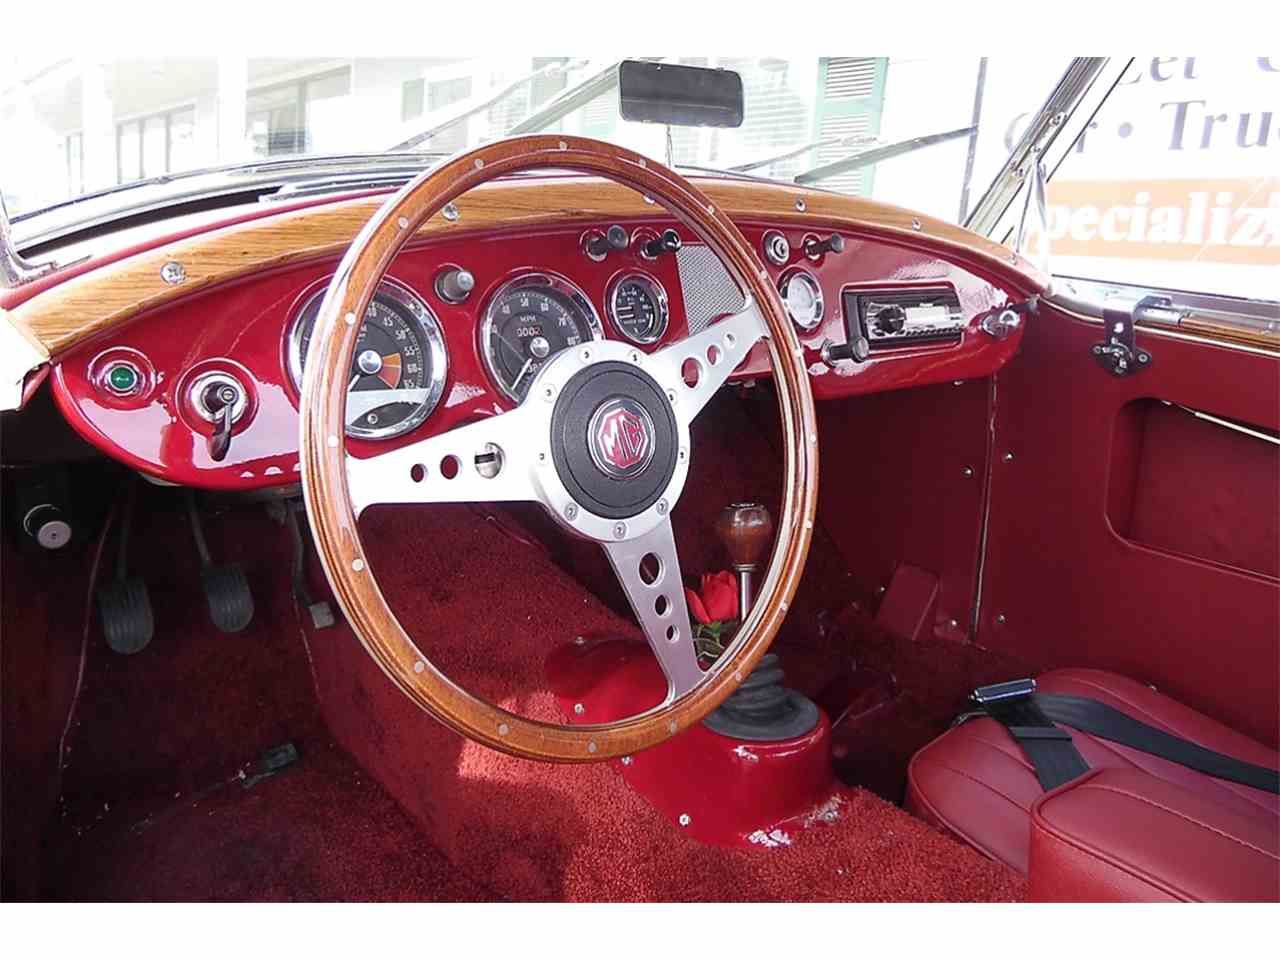 Large Picture of Classic 1956 MGA located in Redlands California - $19,995.00 - JTIG